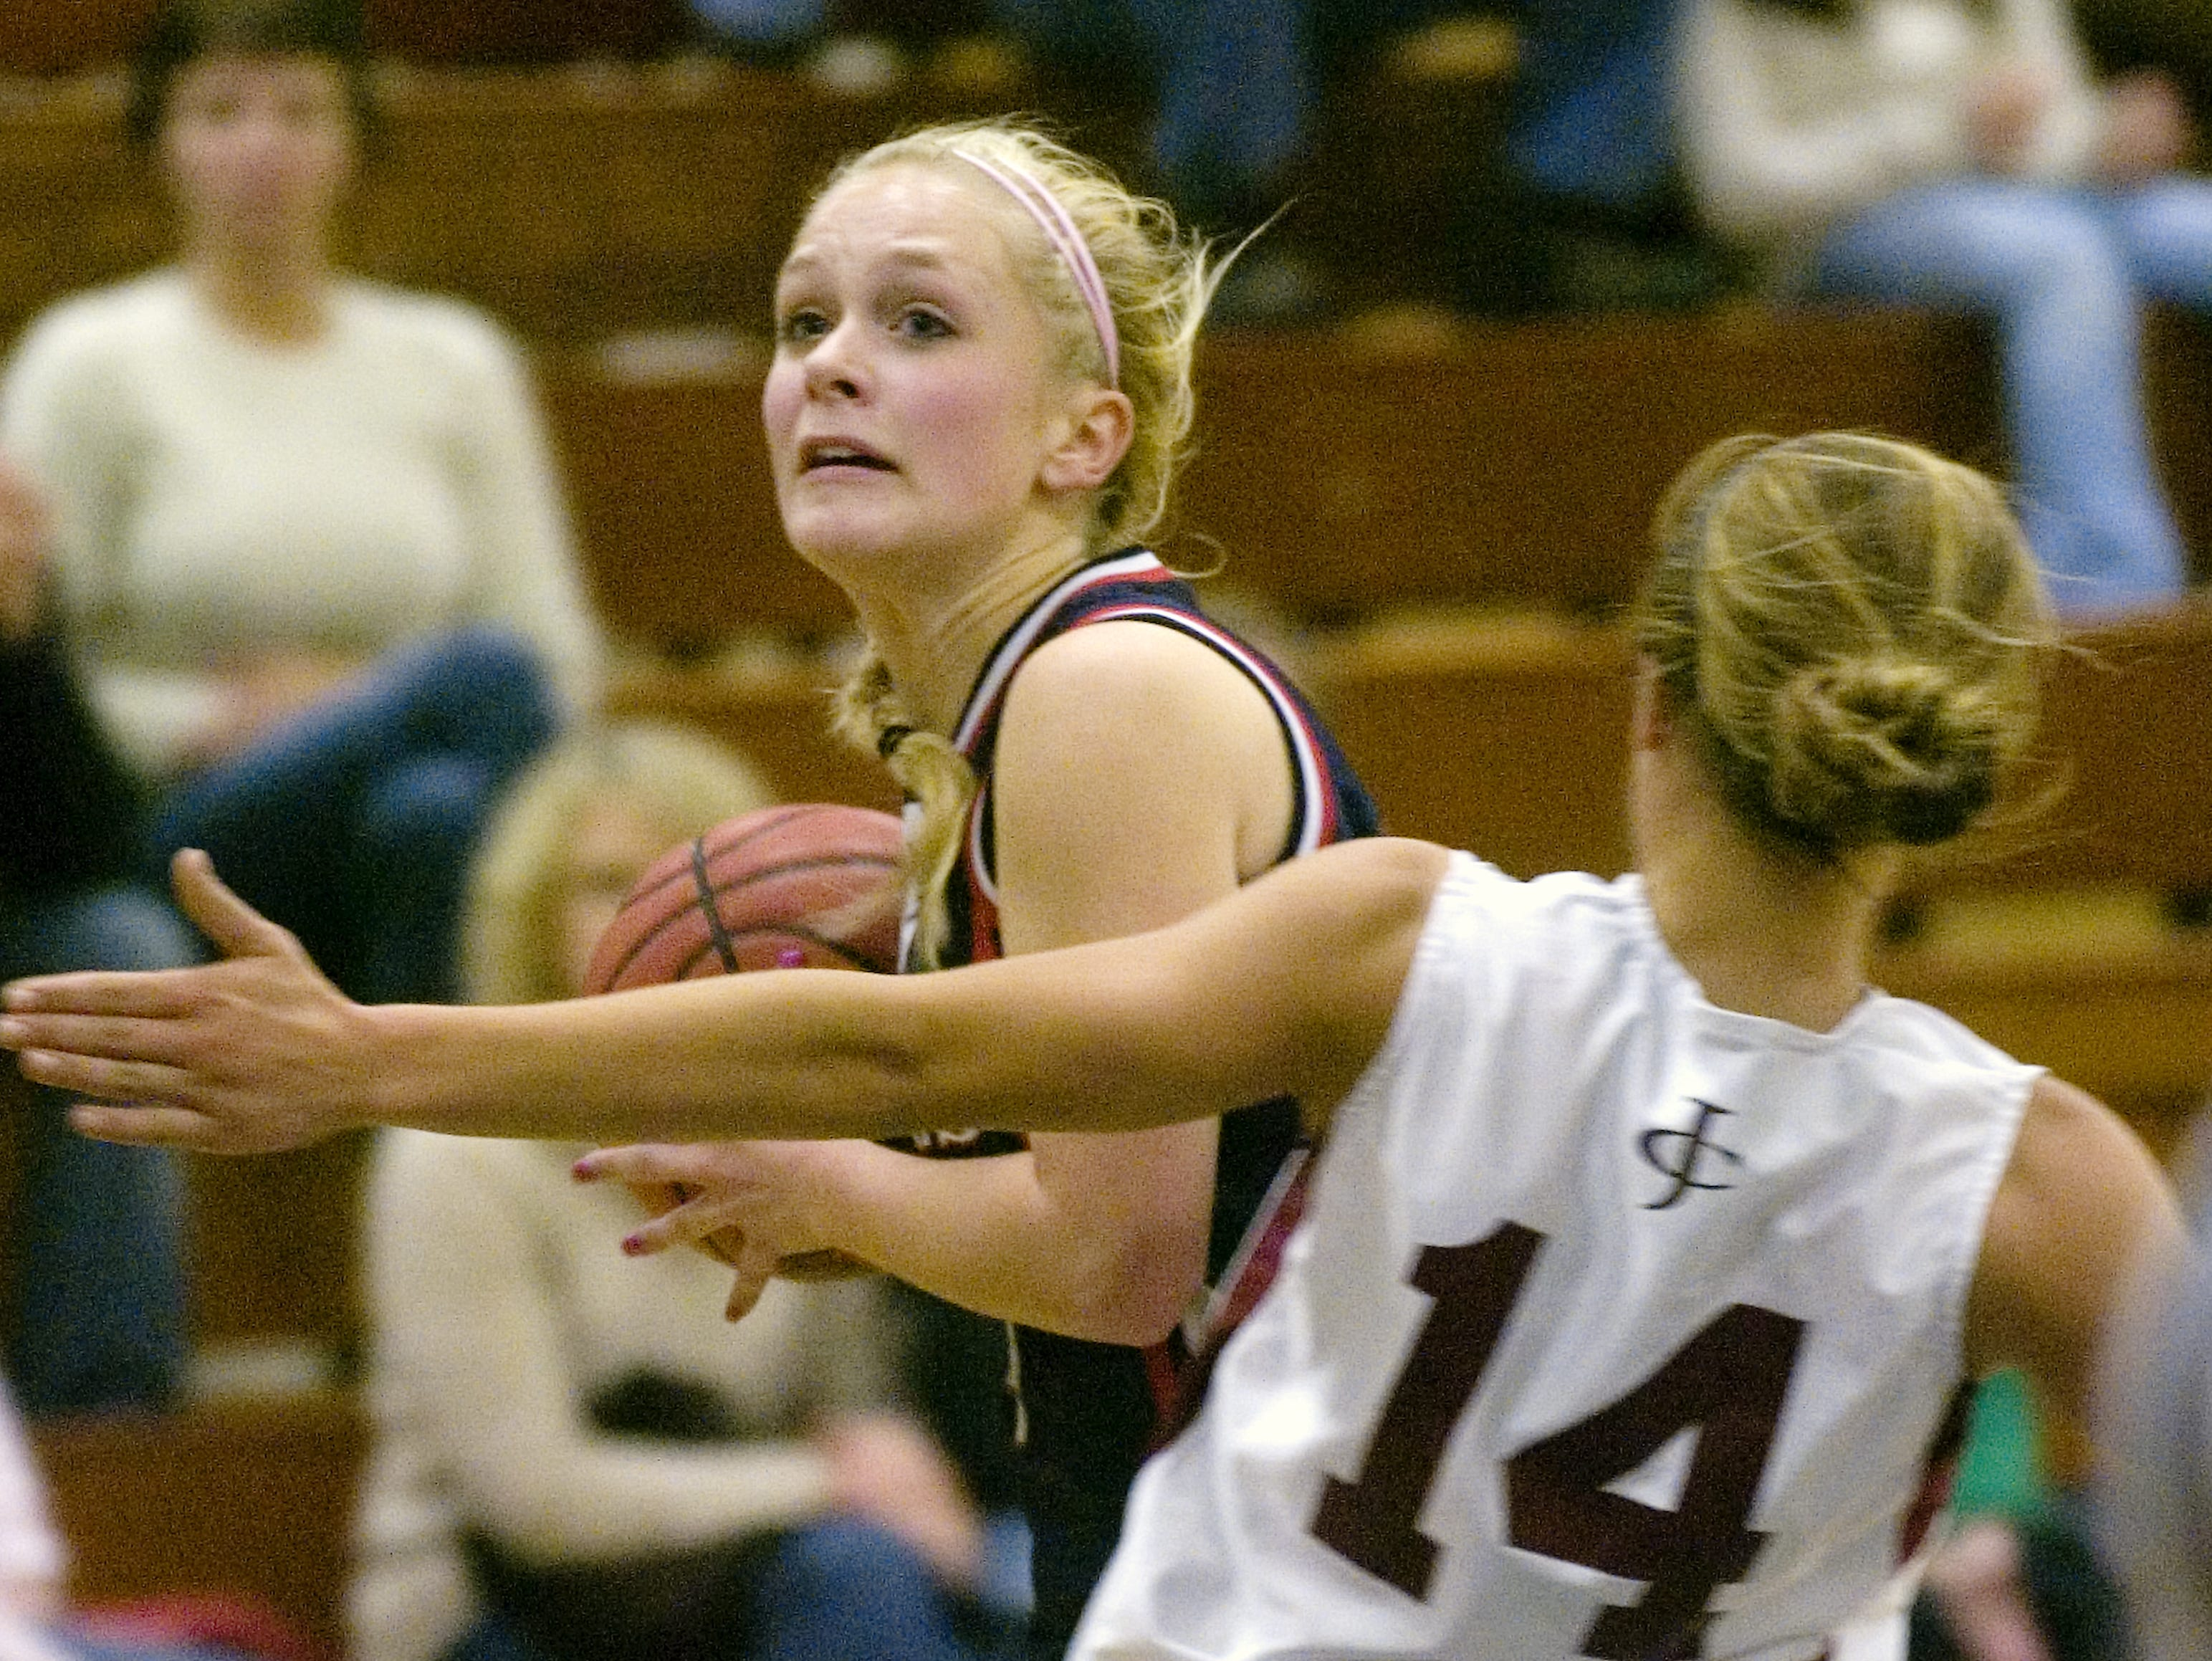 2008: Chenango Forks' Haley VanTassel, left, and Johnson City's Stacey Fox in the second quarter of Saturday's Tip-Off Tournament consolation game at Chenango Forks.